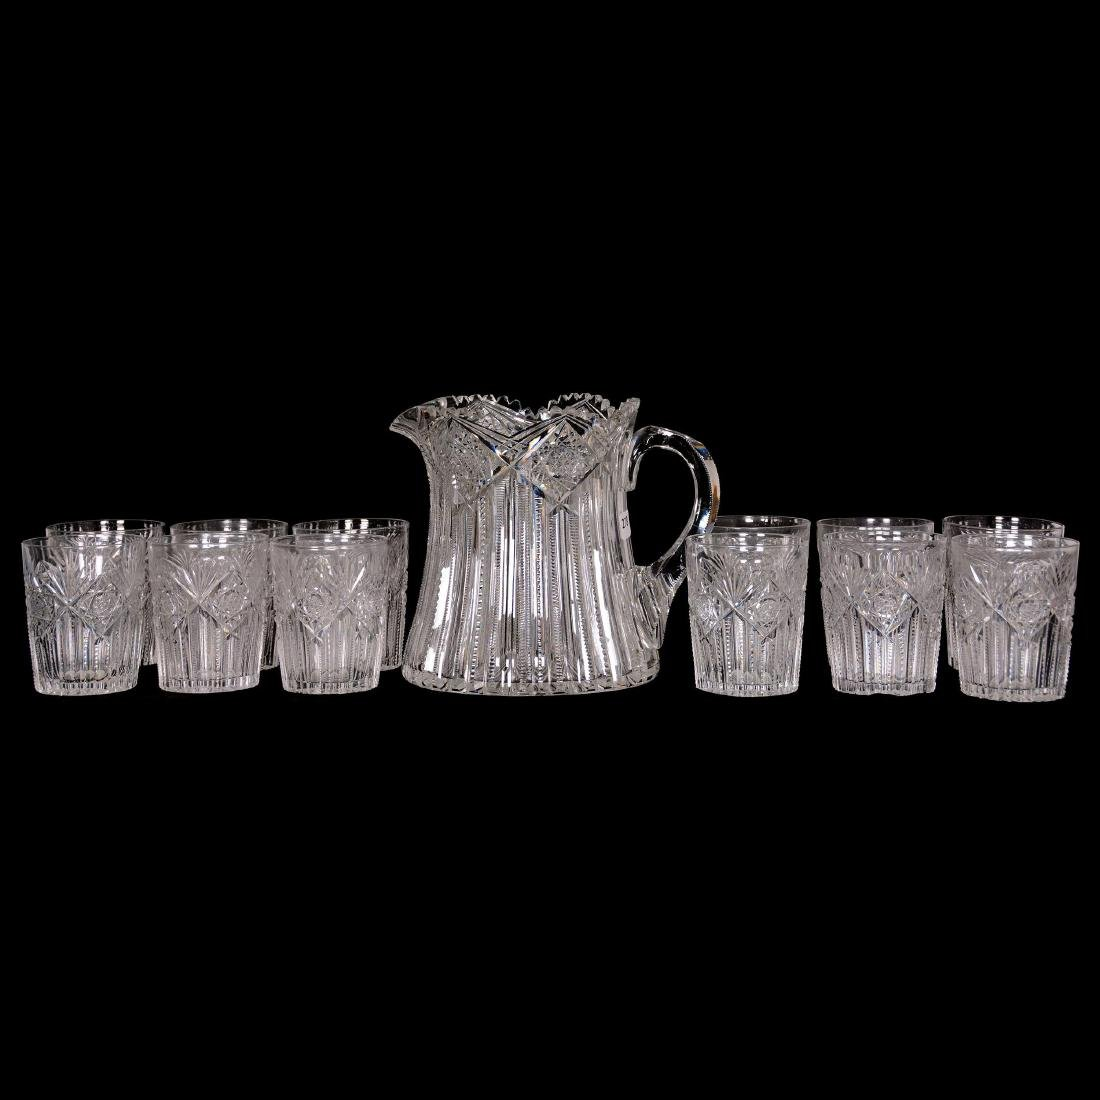 Pitcher and (12) Tumblers - ABCG